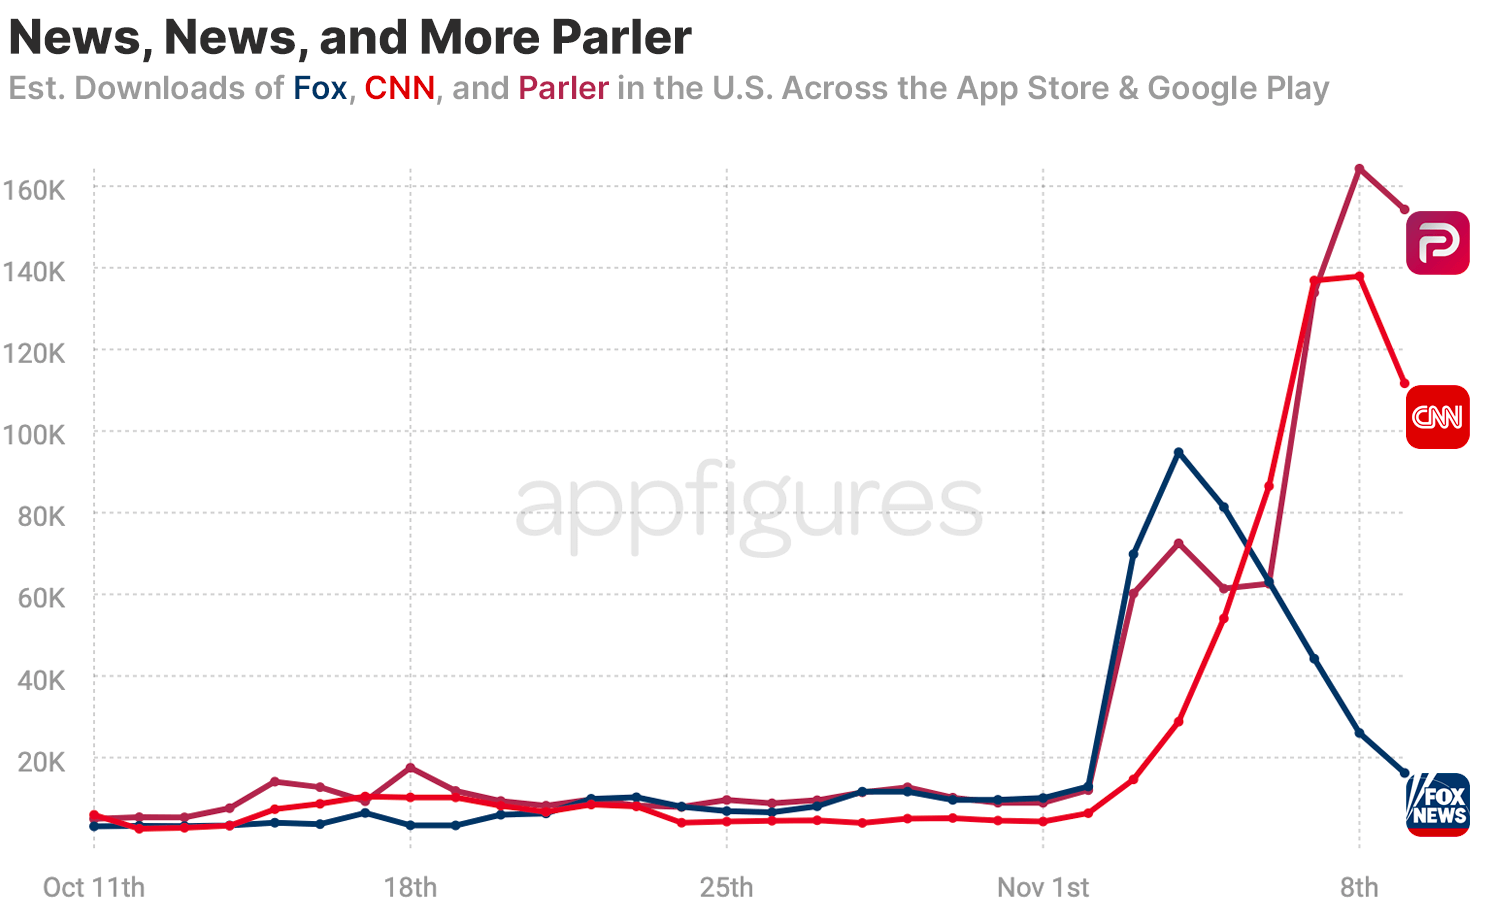 Parler was downloaded more times than Fox and CNN